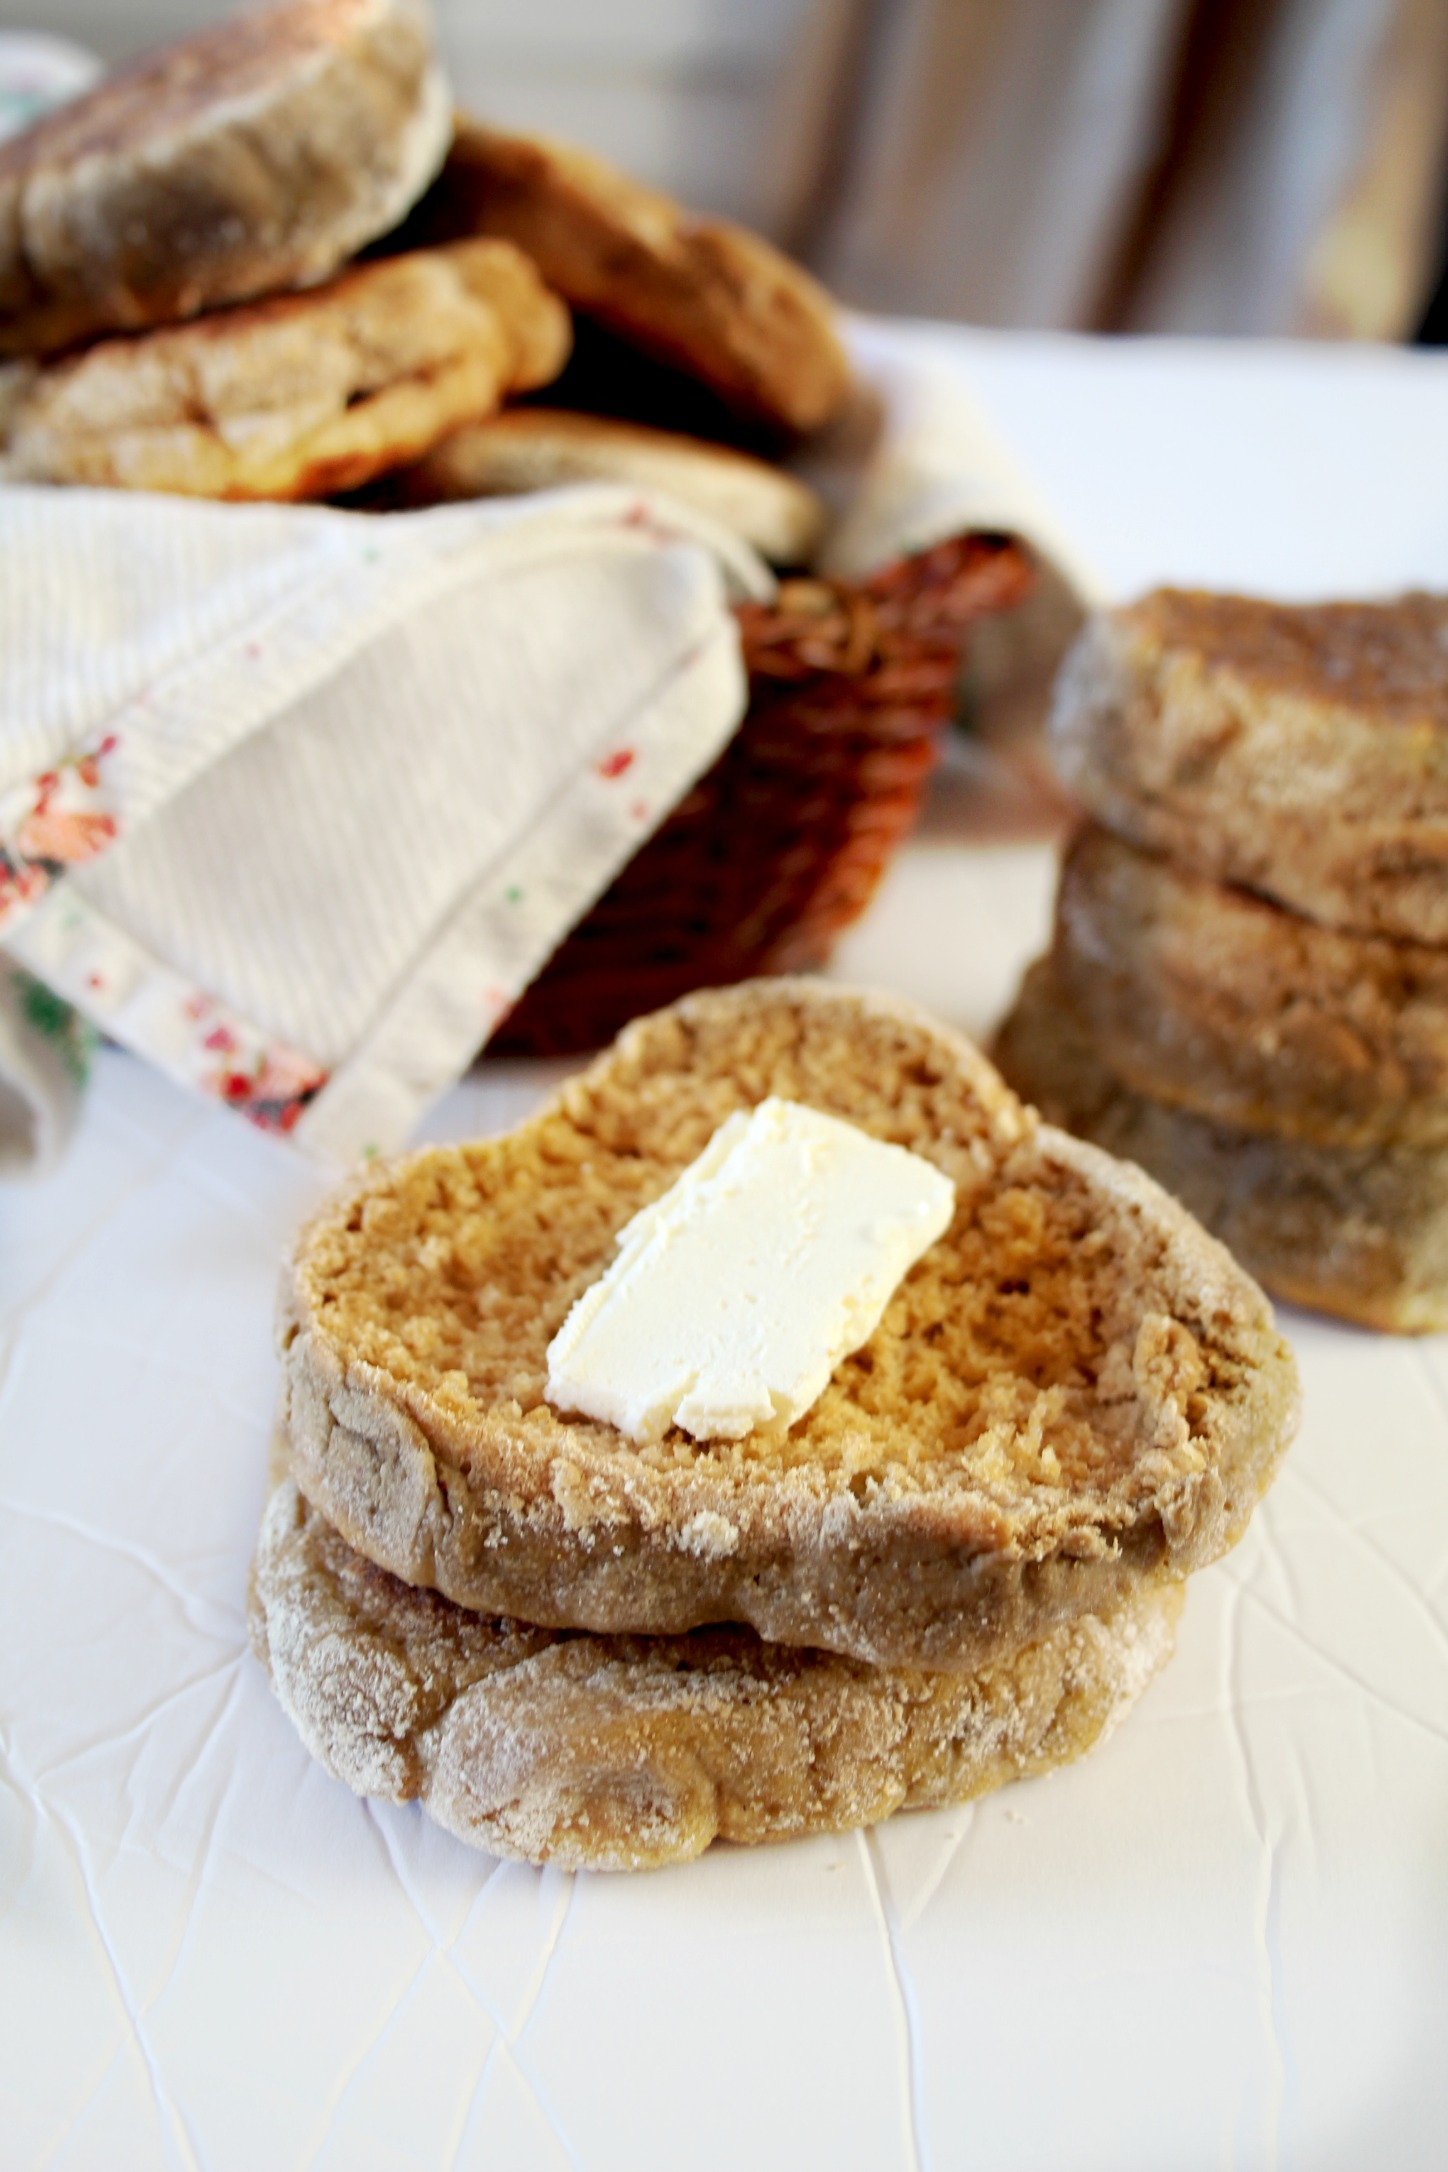 Authentic English Muffins